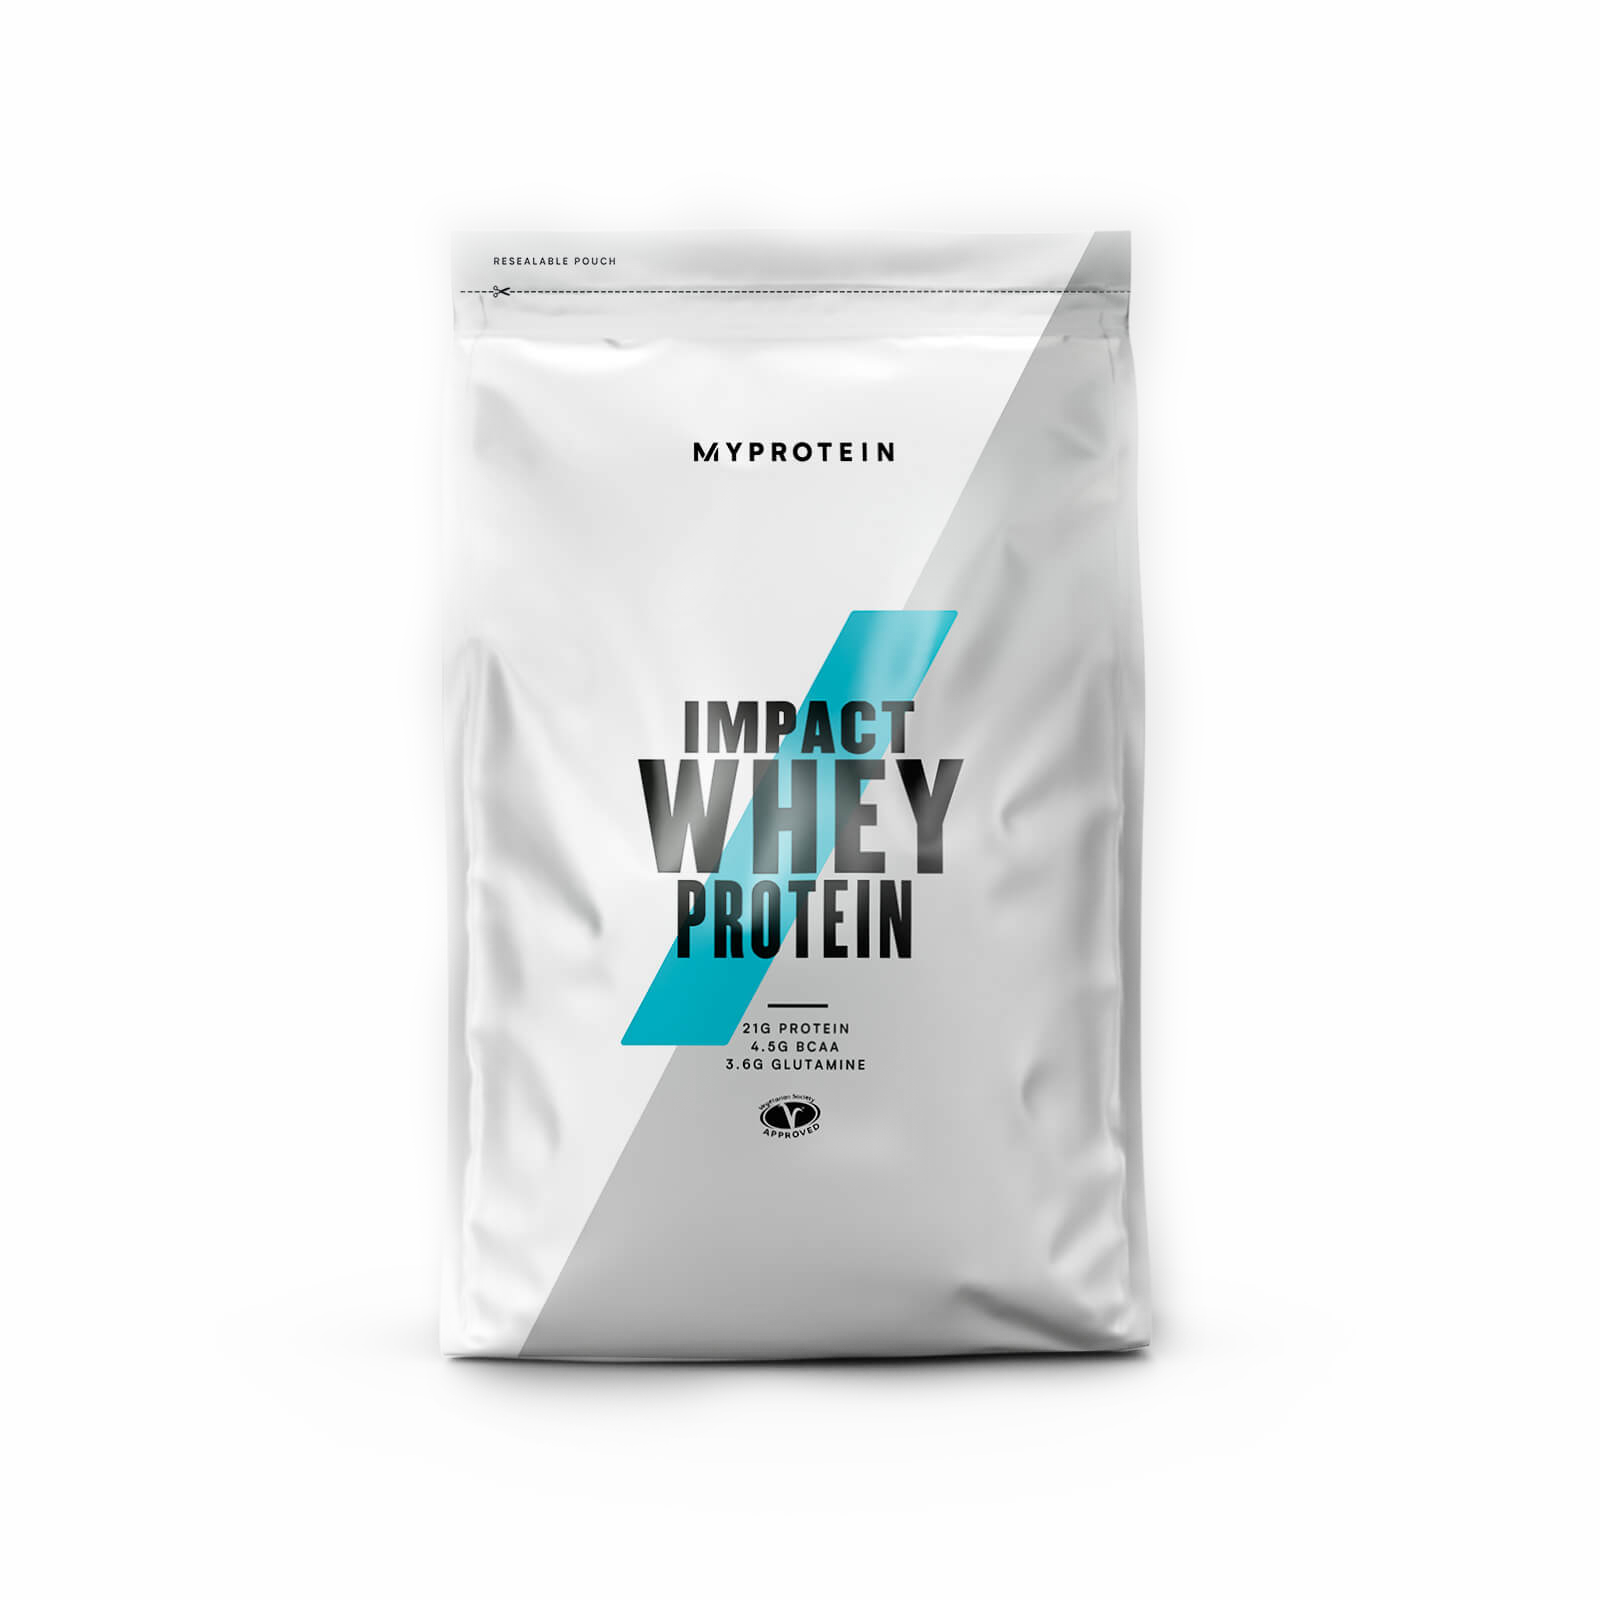 Impact Whey Protein Reviews